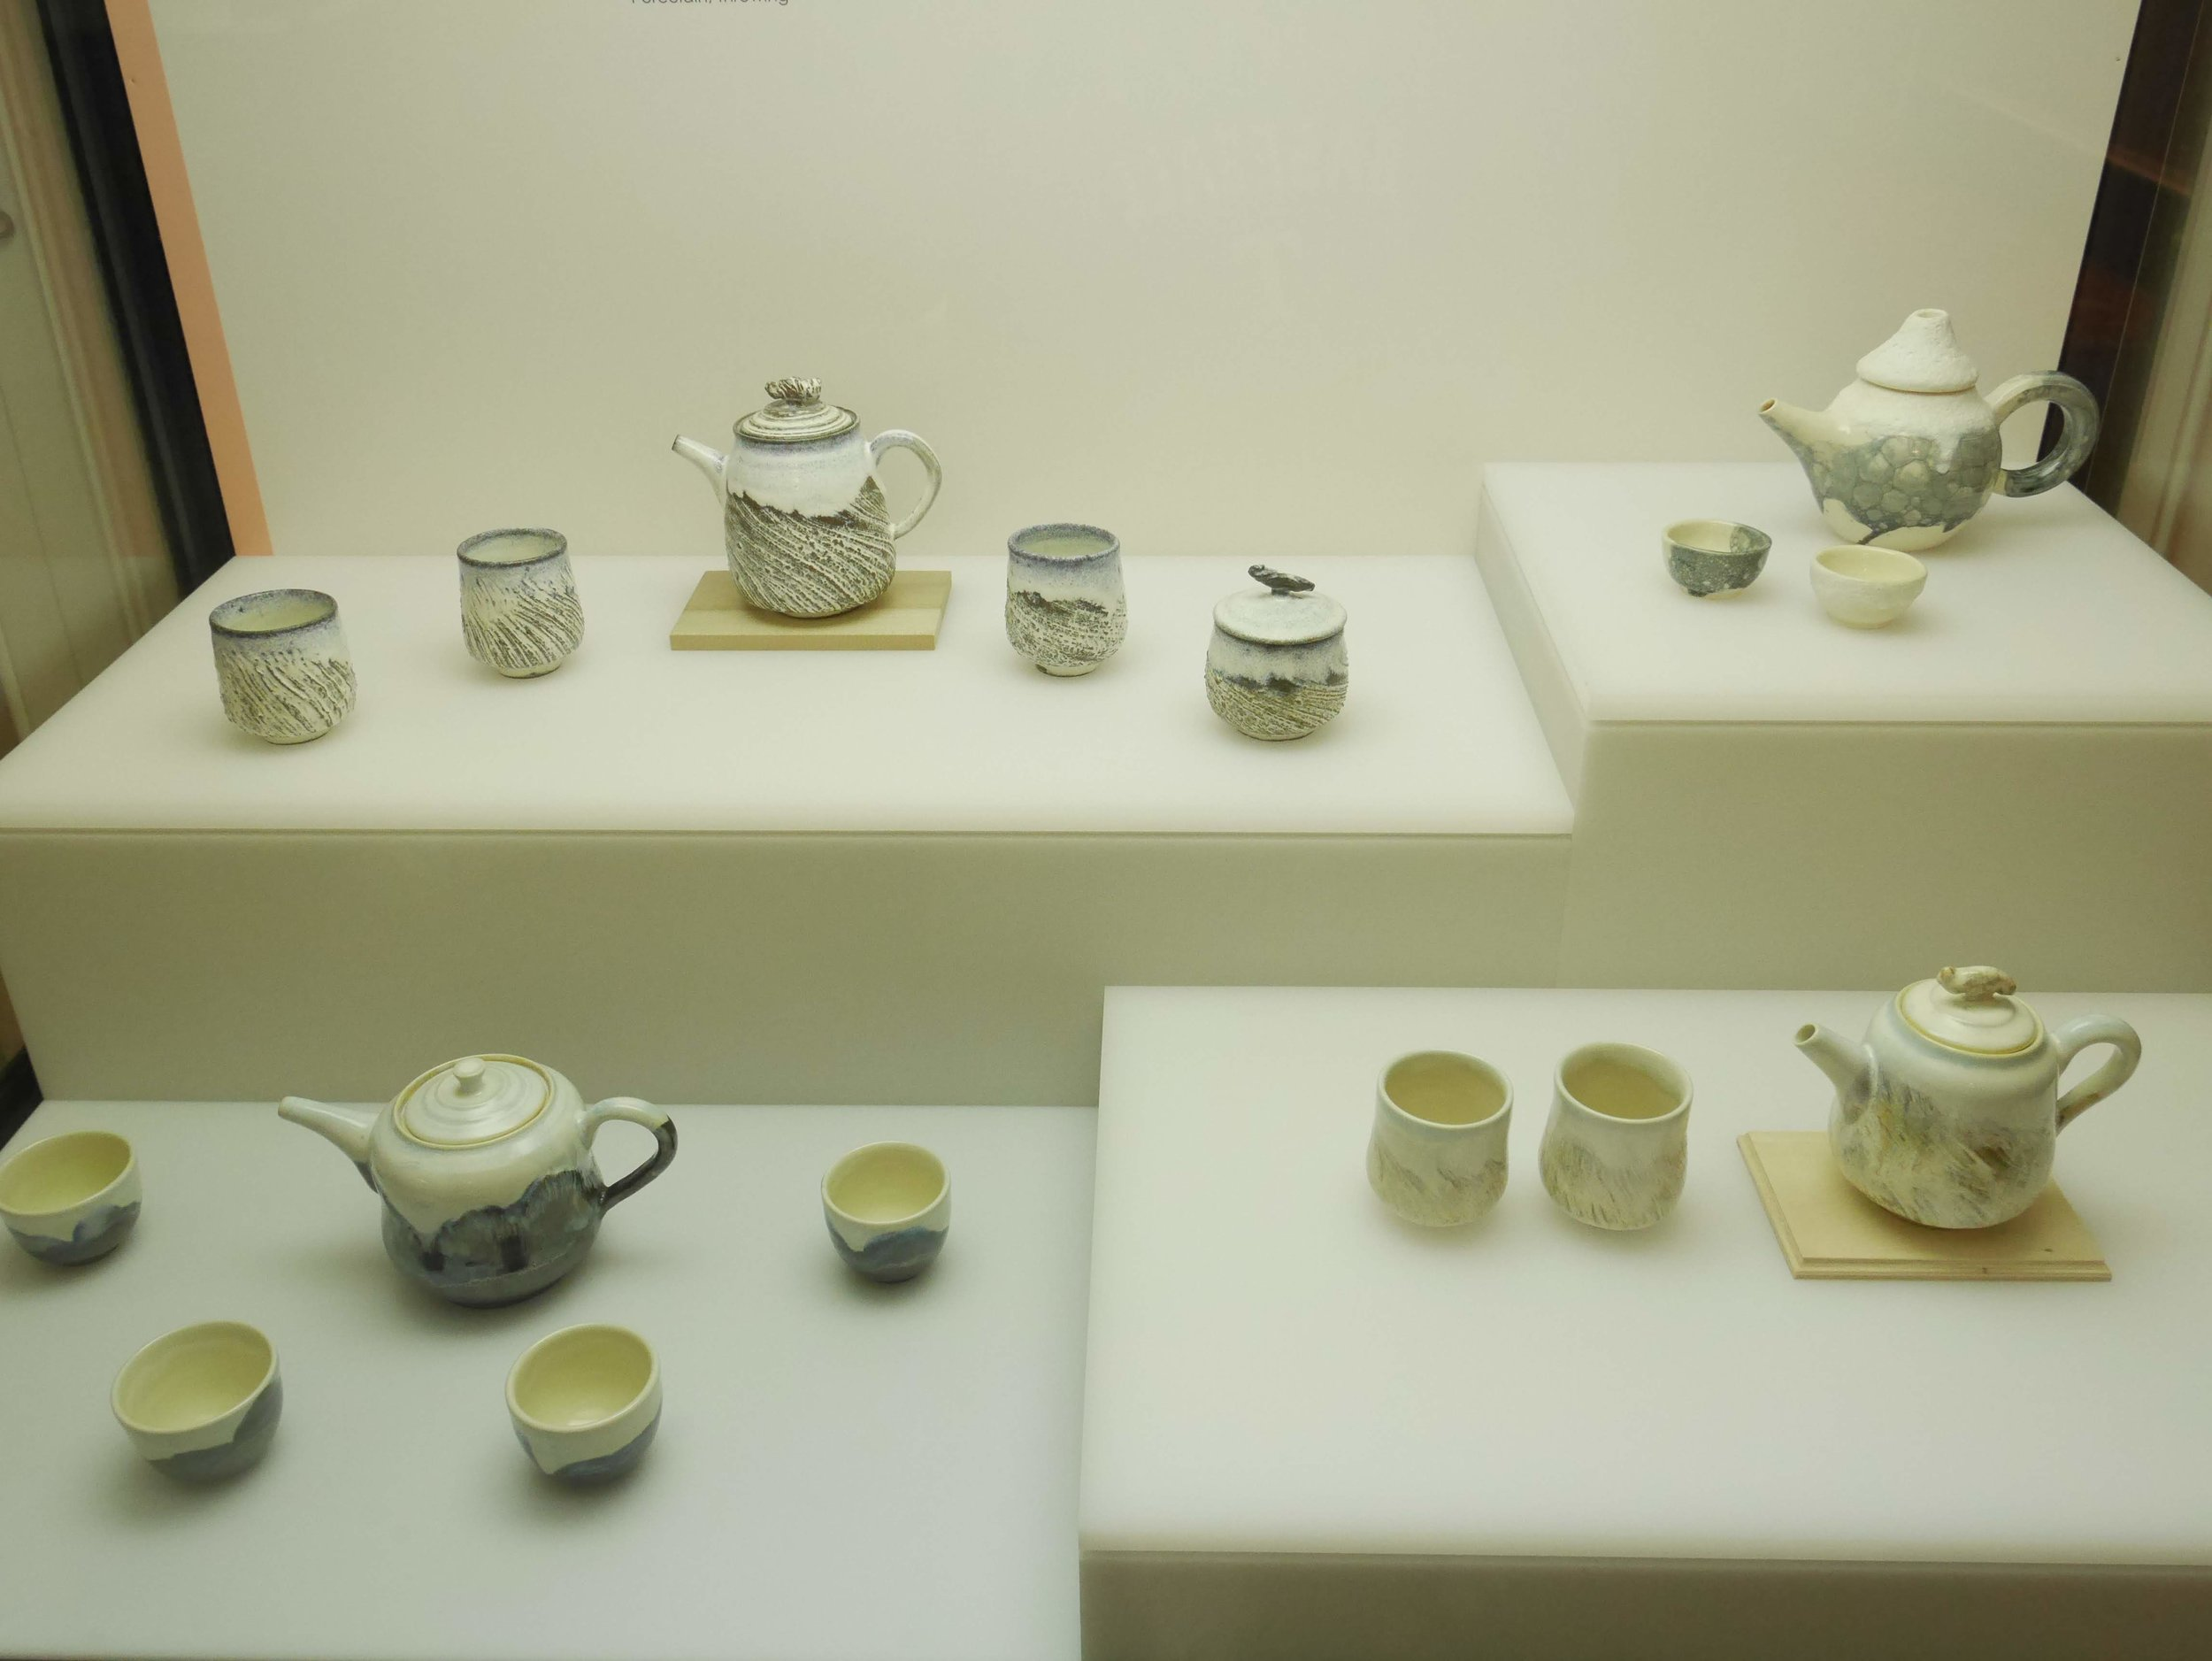 tea sets on display at the Flagstaff Museum